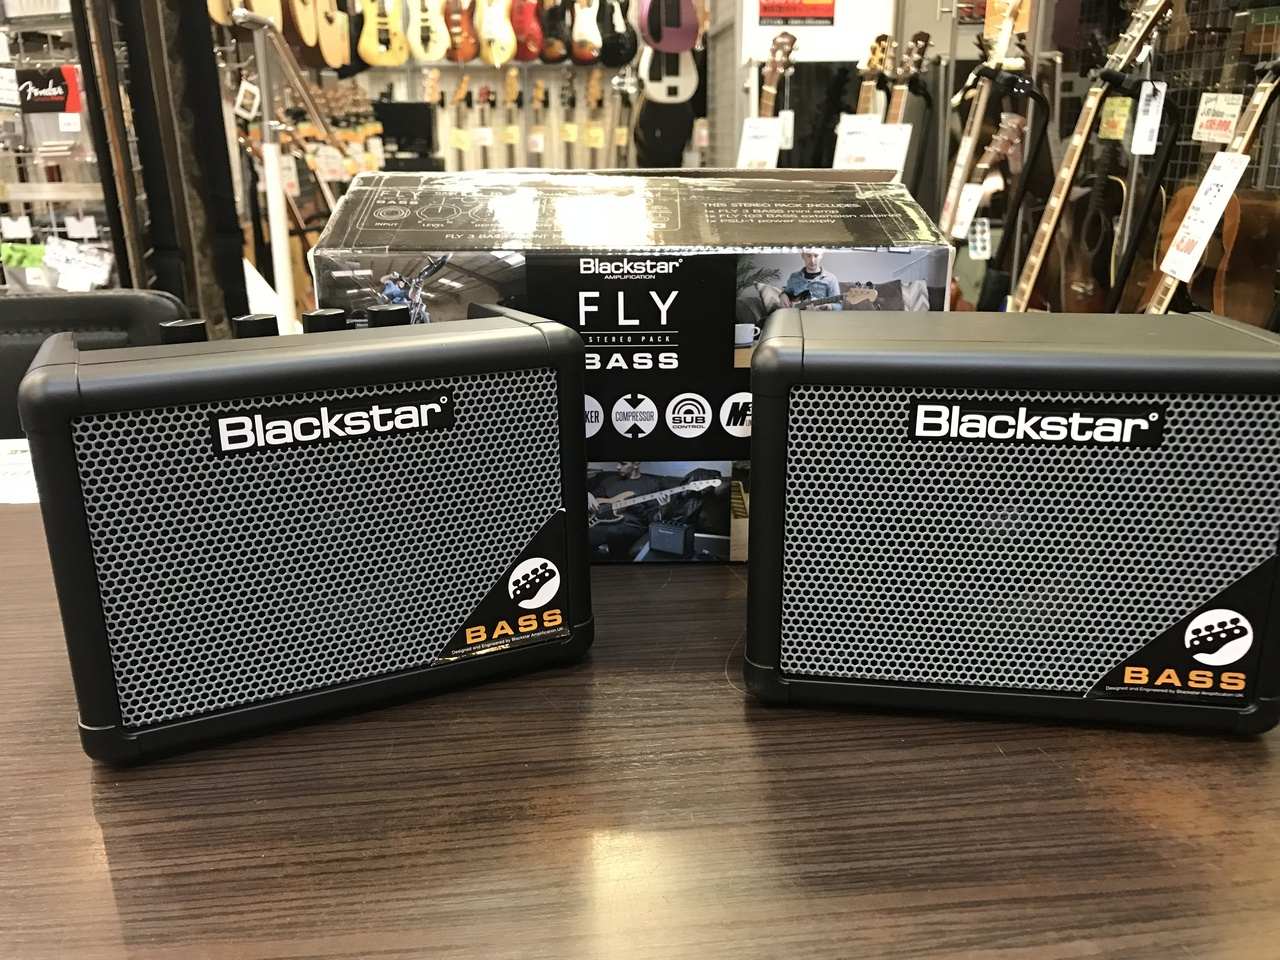 Blackstar Fly 3 Bass Stereo Pack 【アウトレット特価】【ベースアンプ】